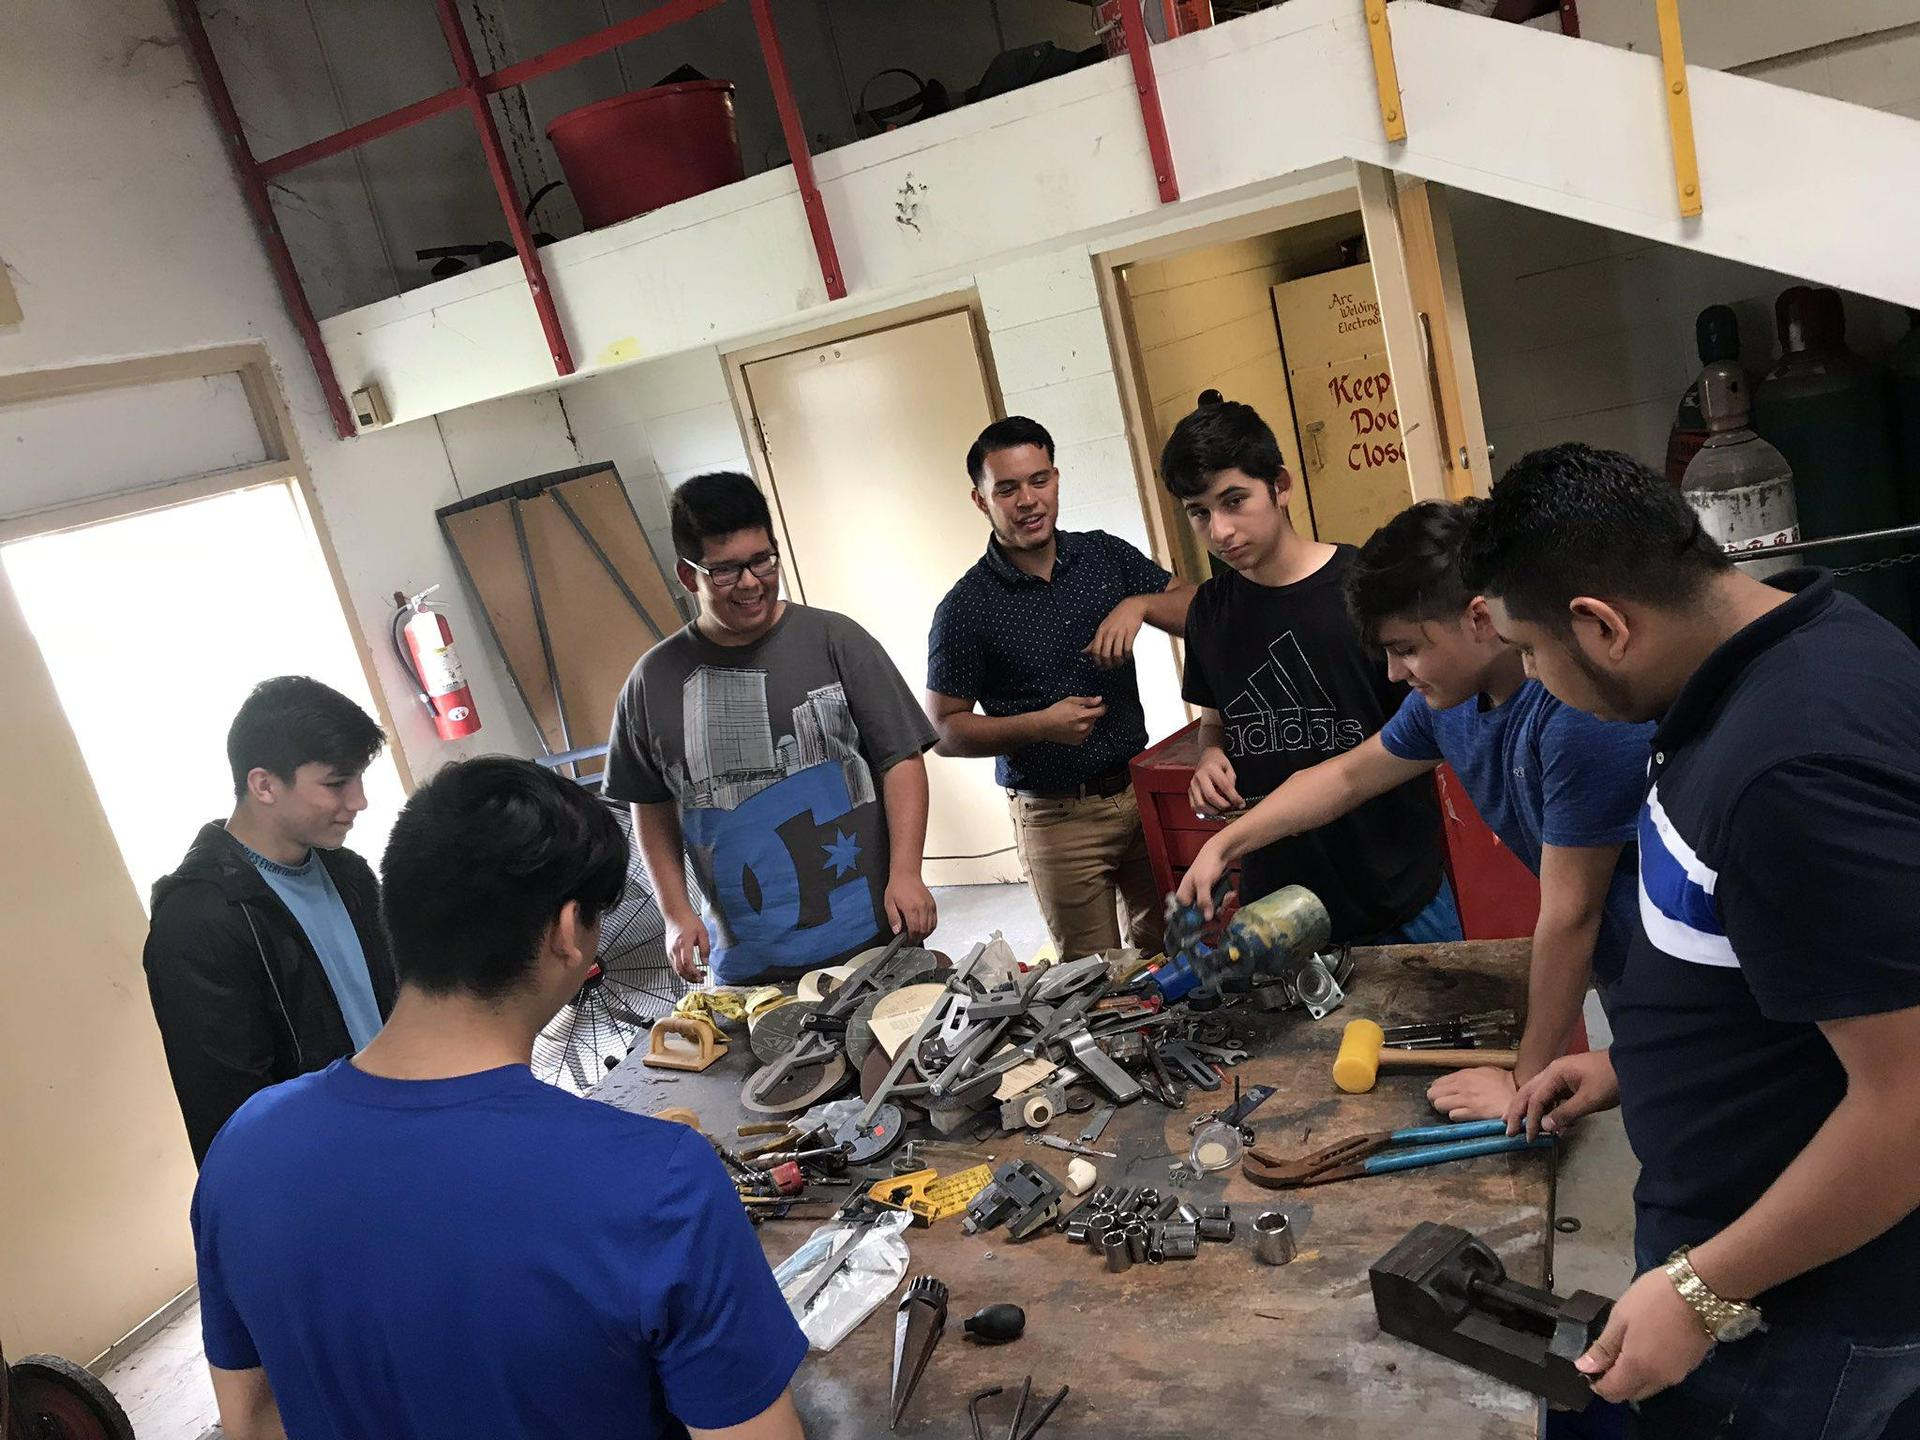 group of students in mechanic shop standing around table with tools